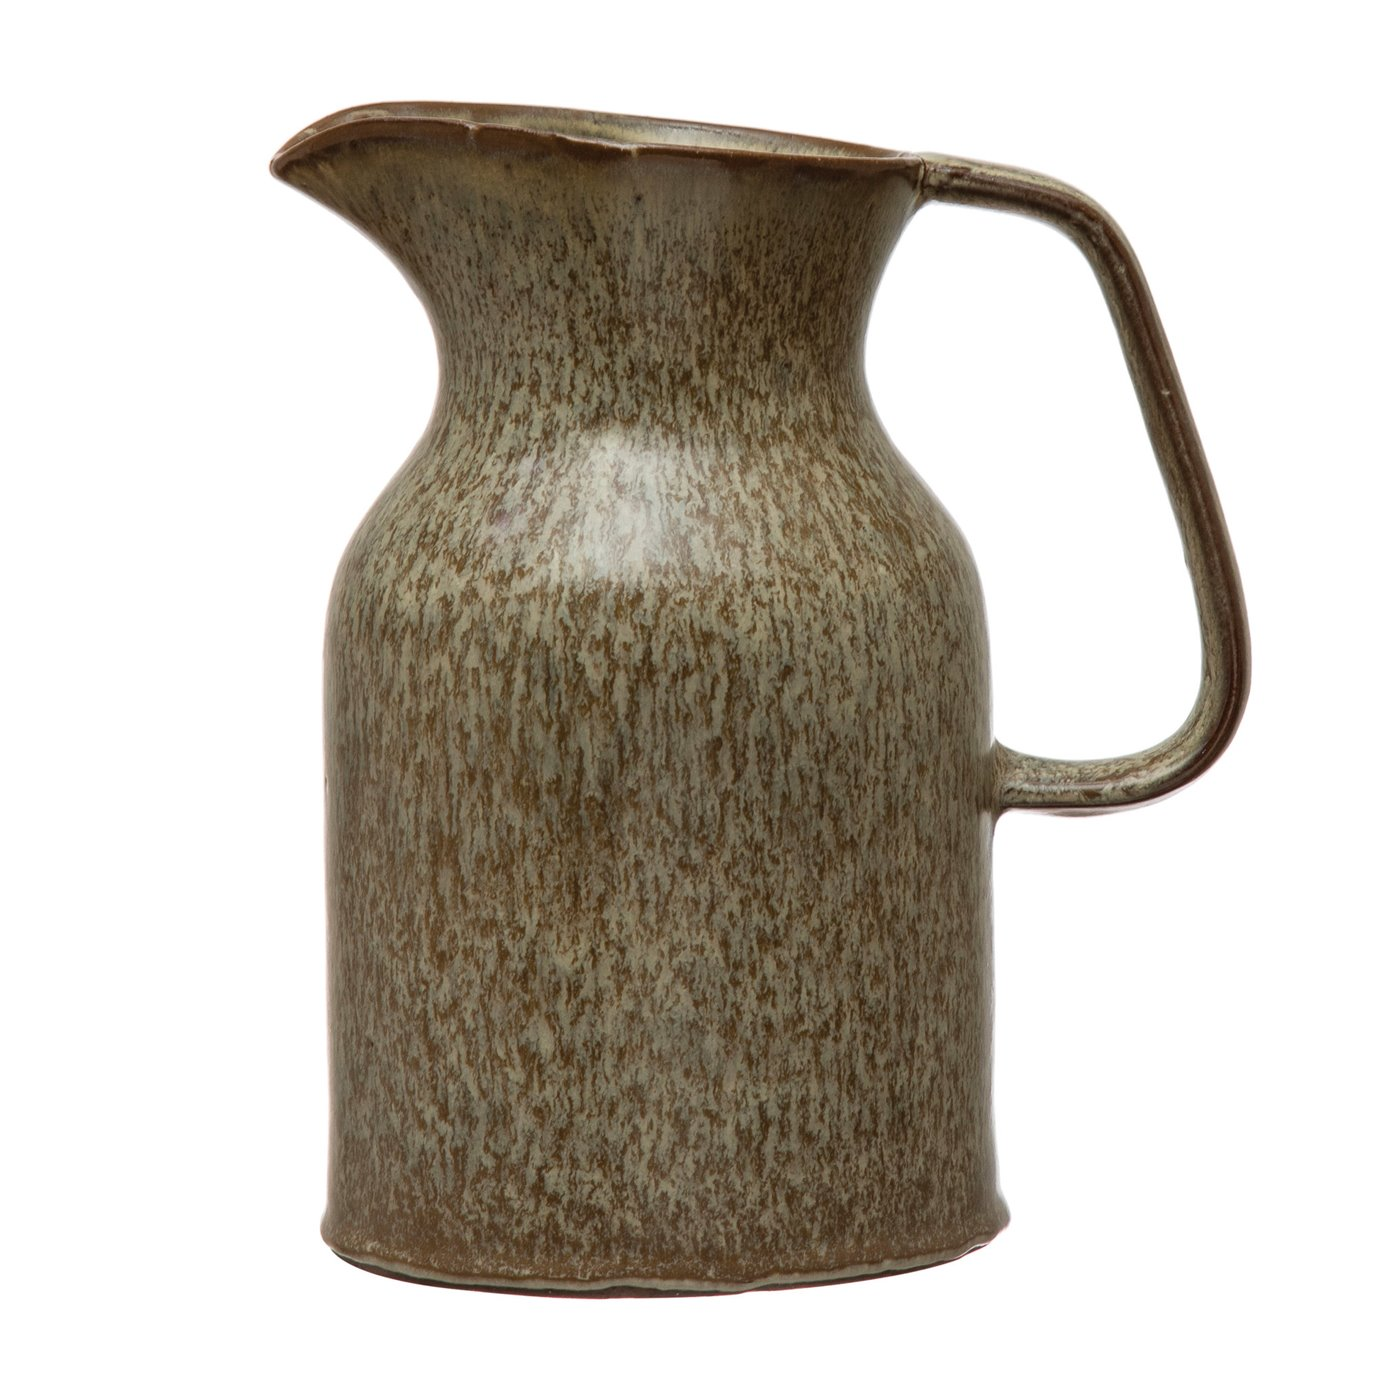 36 oz. Stoneware Pitcher, Reactive Glaze, Brown (Each One Will Vary)